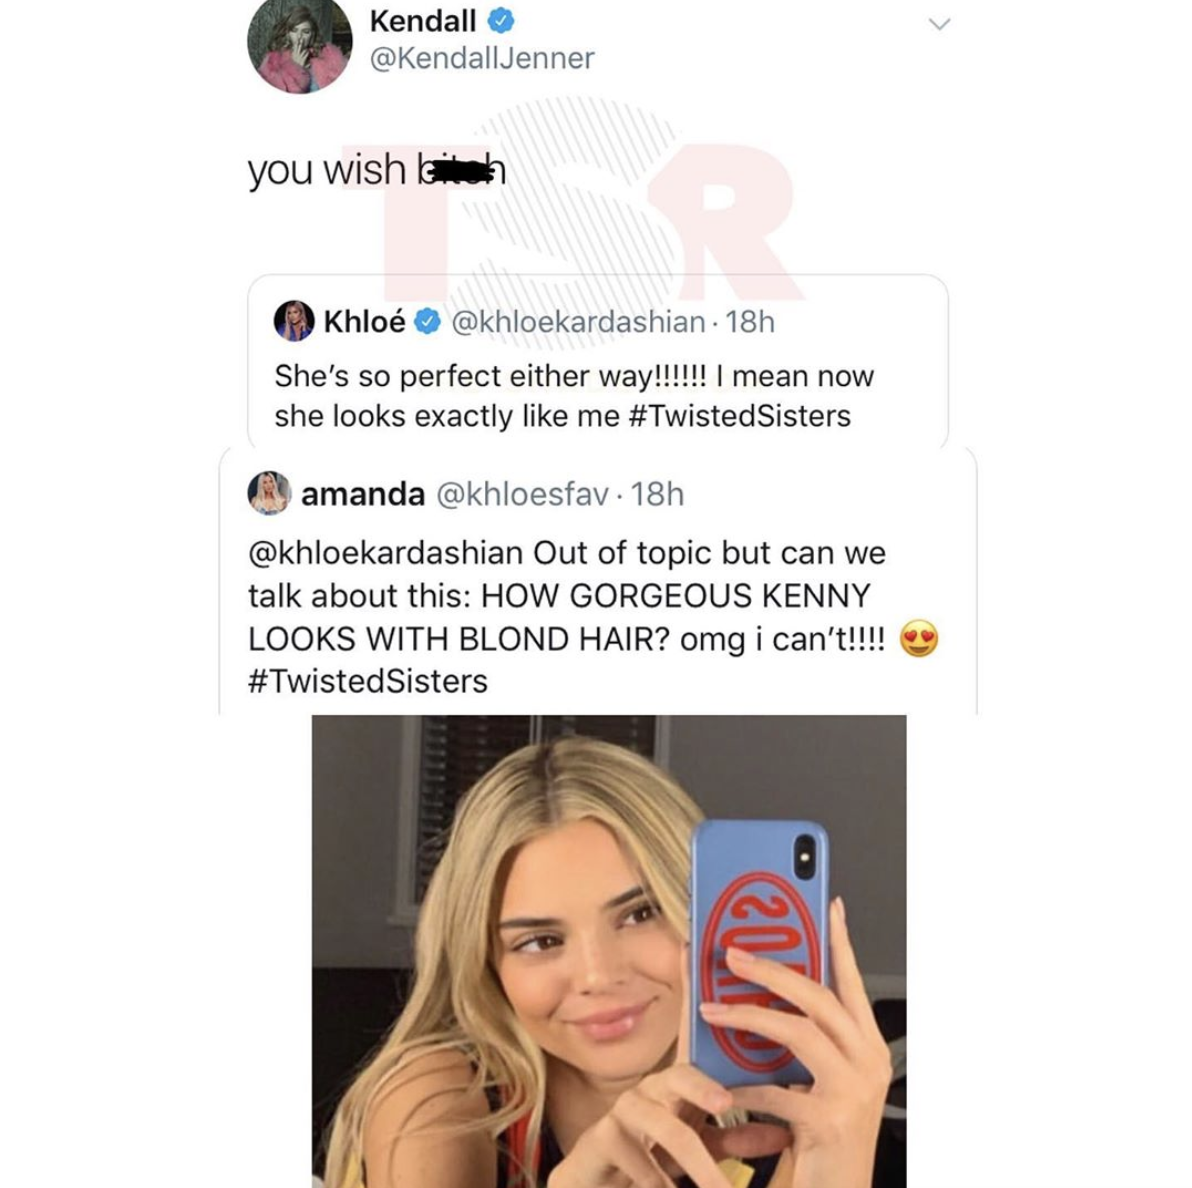 Kendall Jenner and Khloe on Twitter